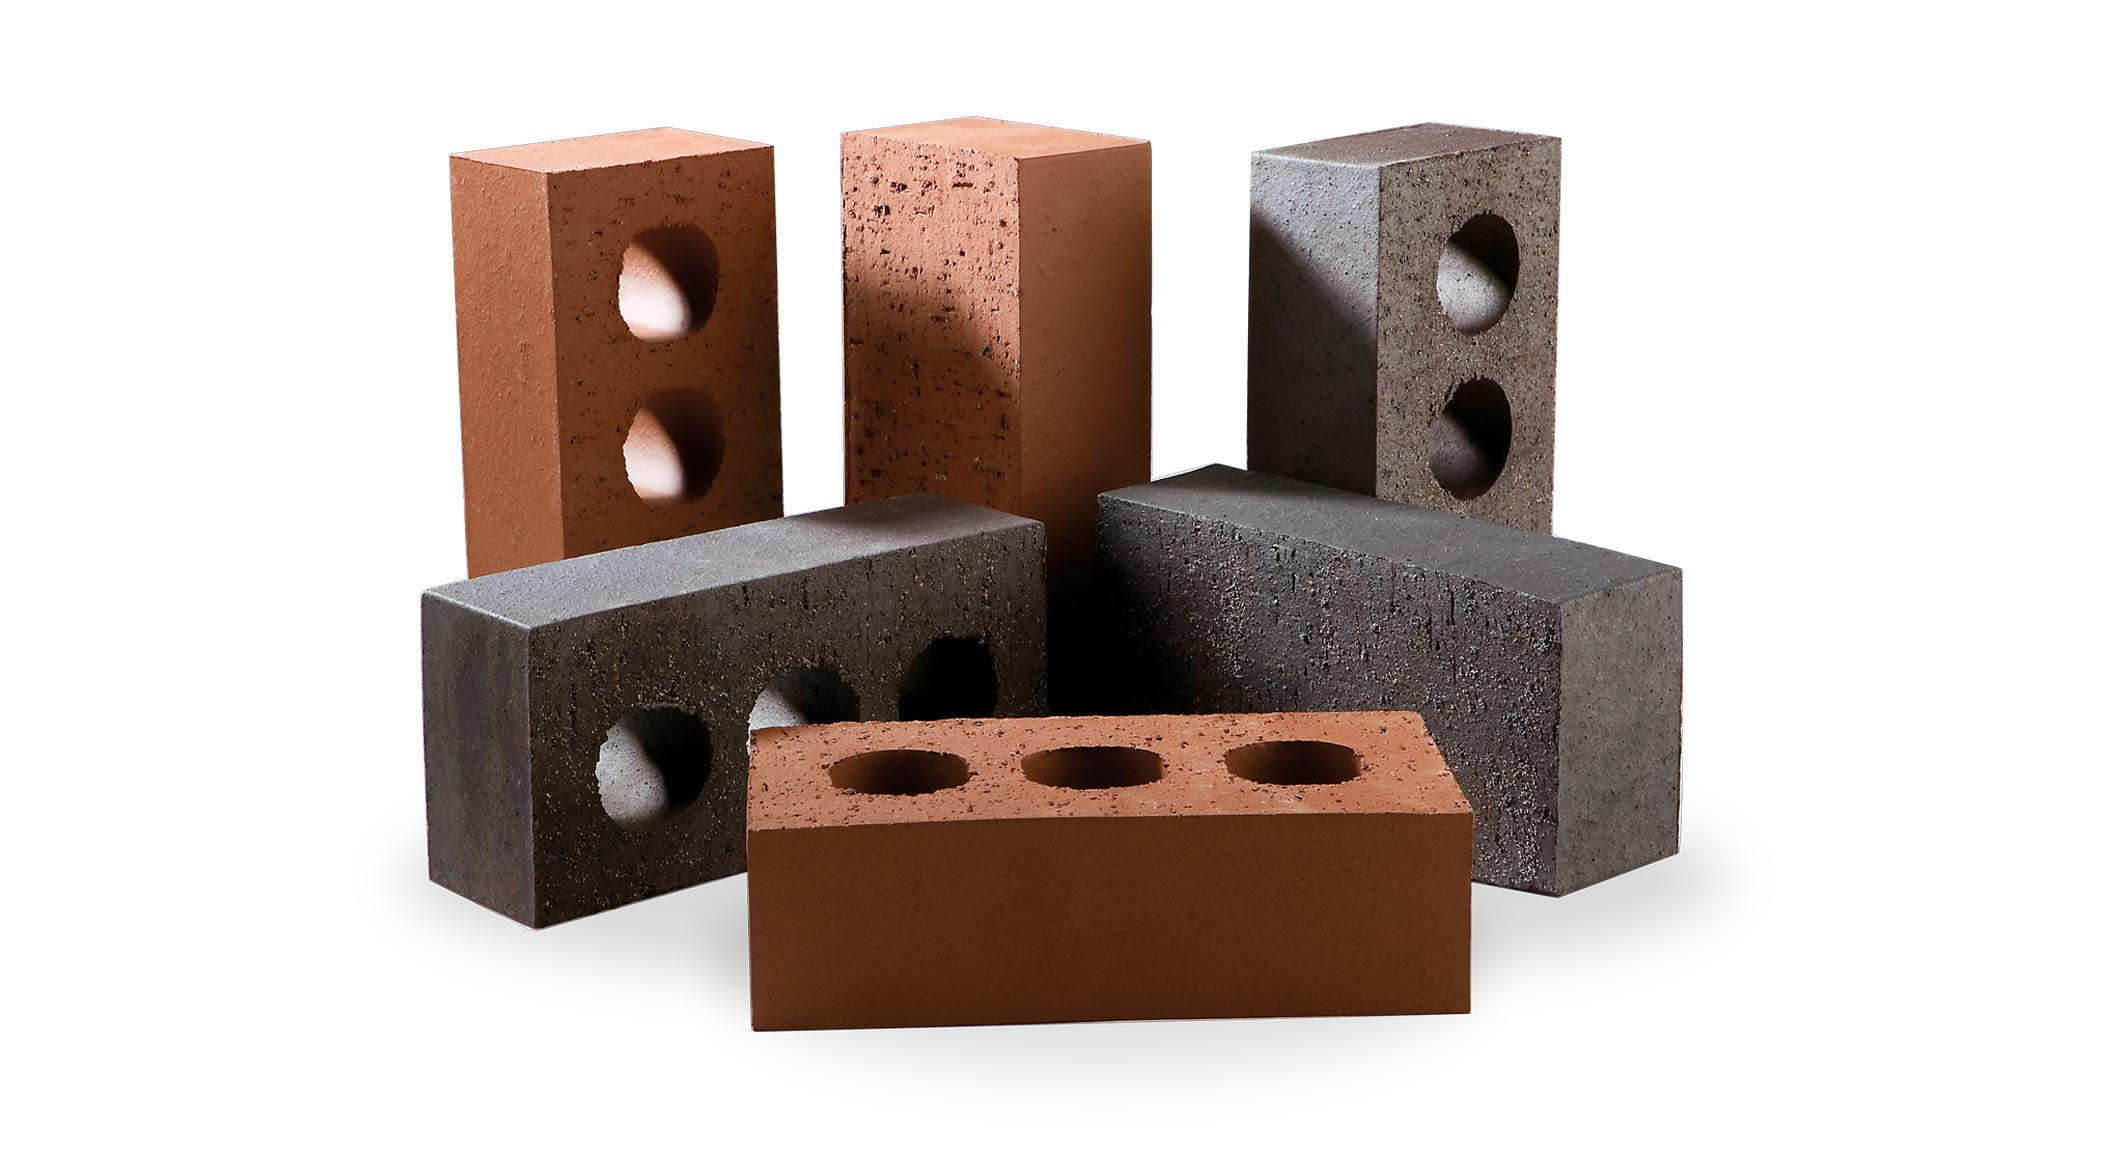 Bricks-Wienerberger.jpg